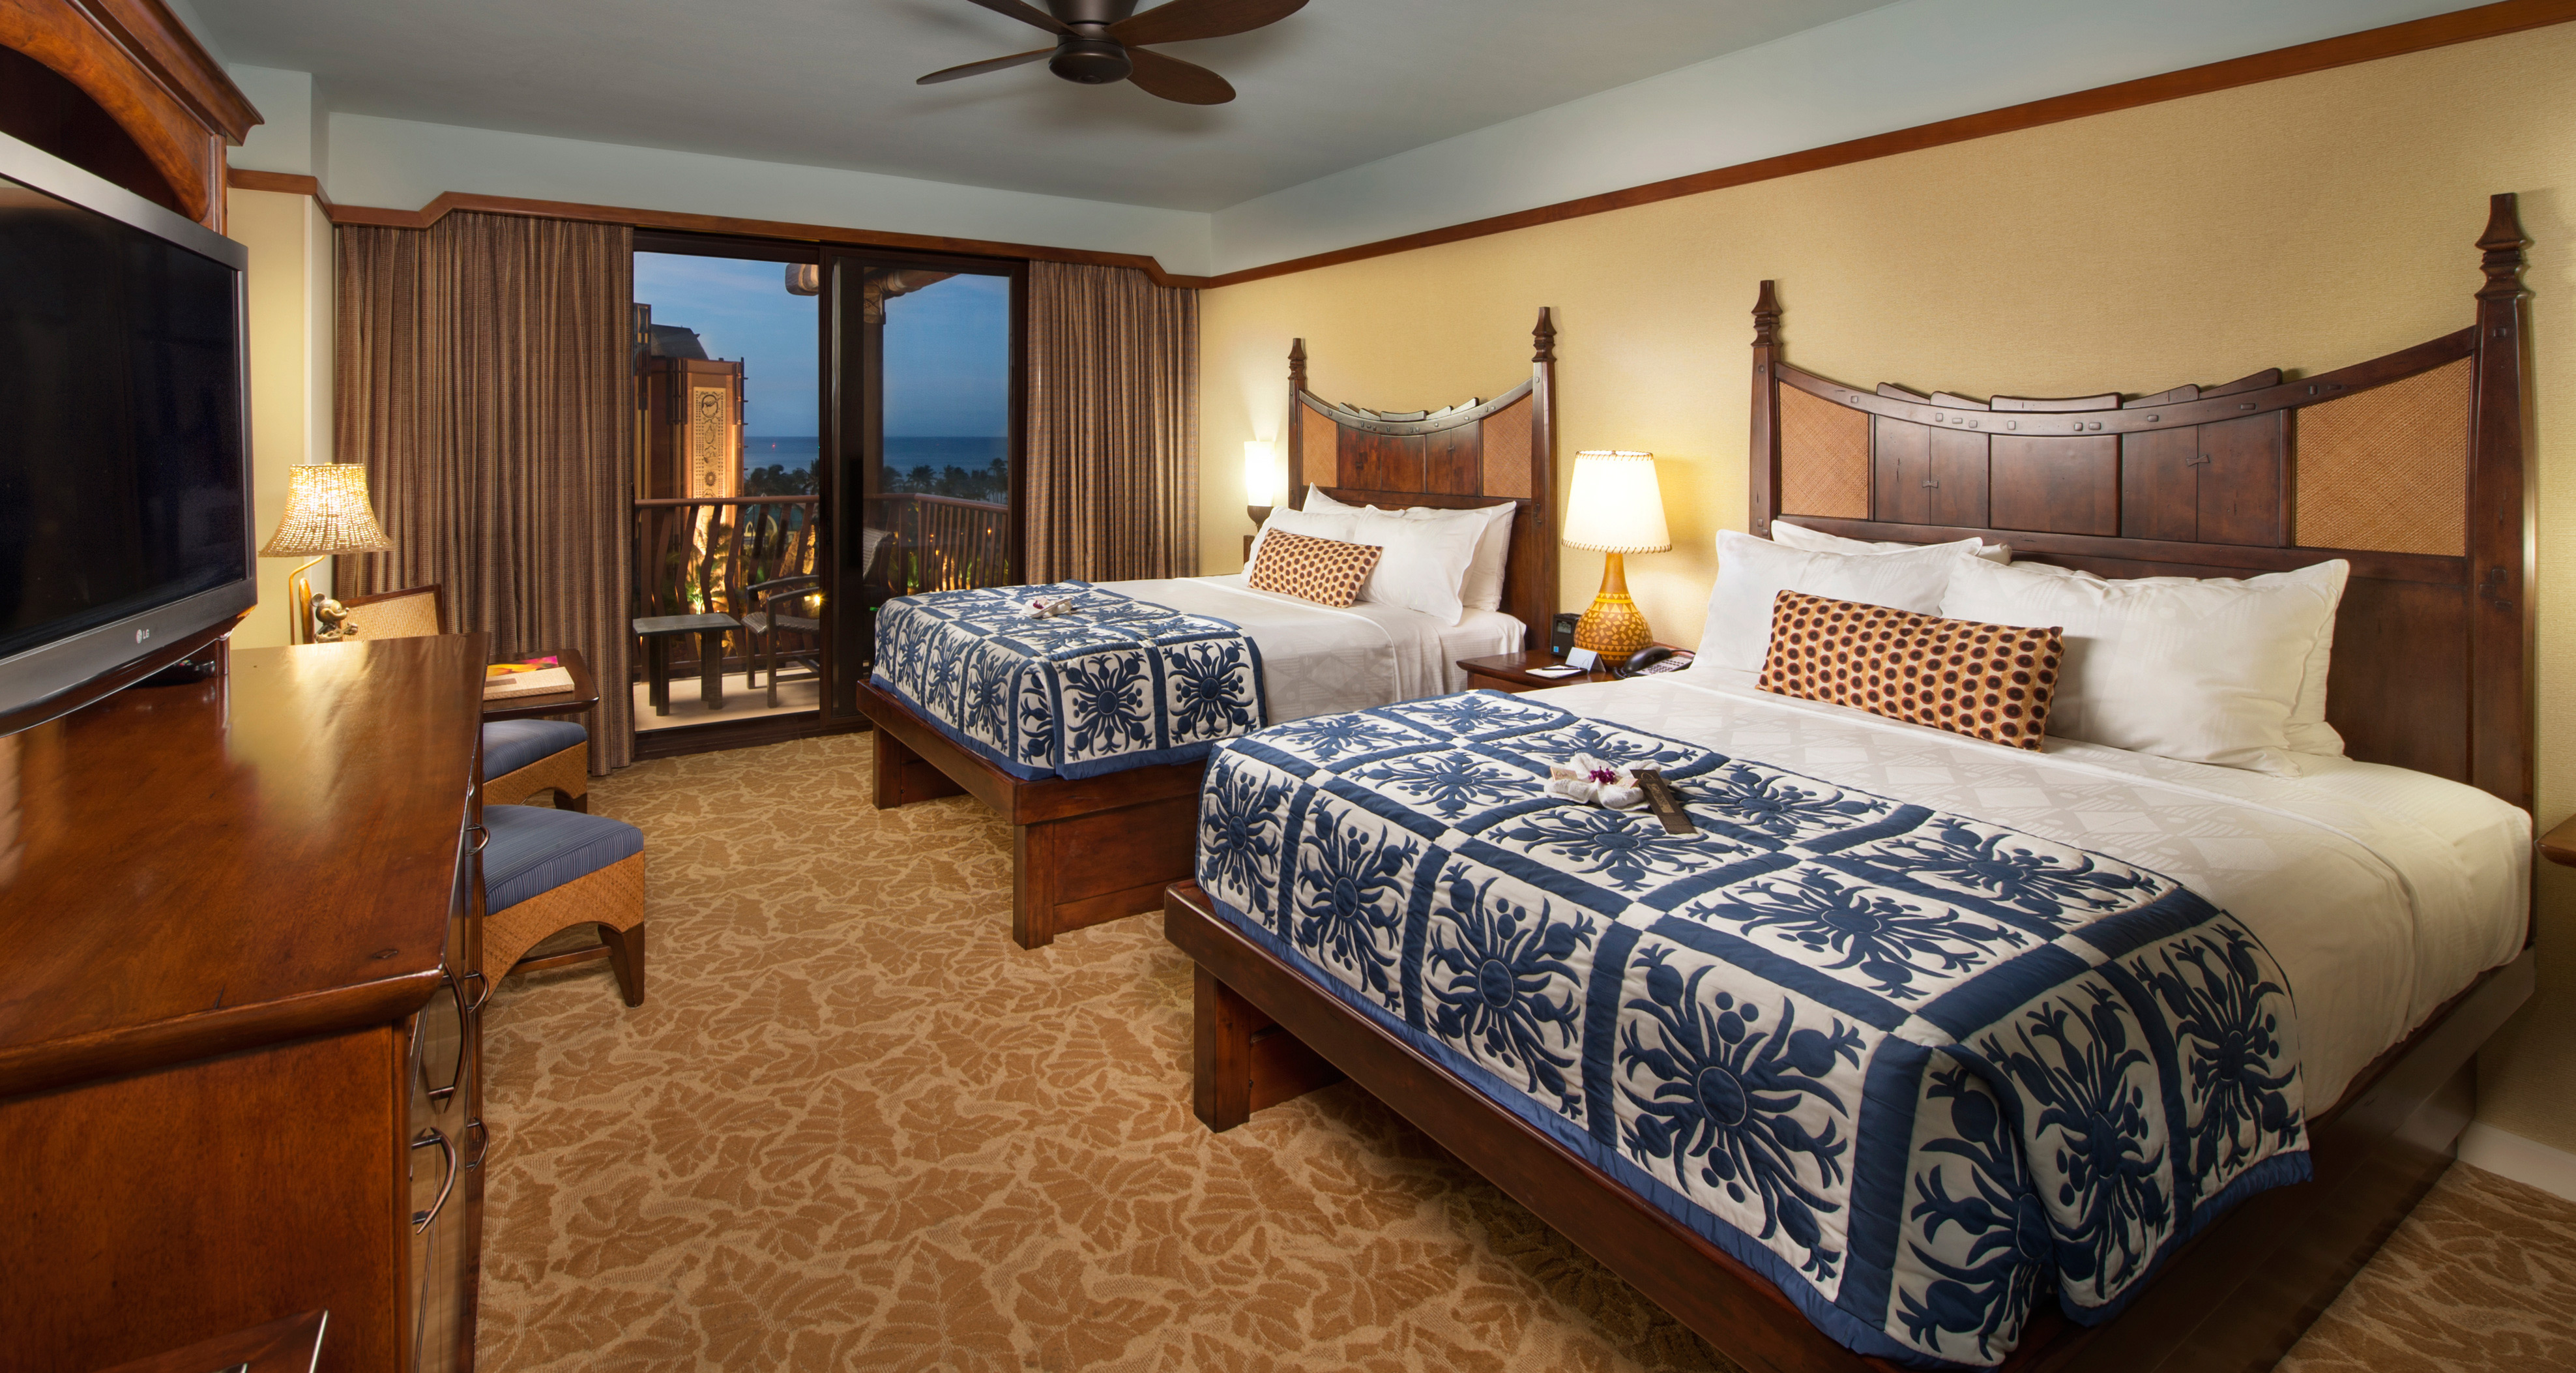 A standard room at Aulani with 2 queen beds. Oahu Hotel Rooms   Suites   Aulani Hawaii Resort   Spa